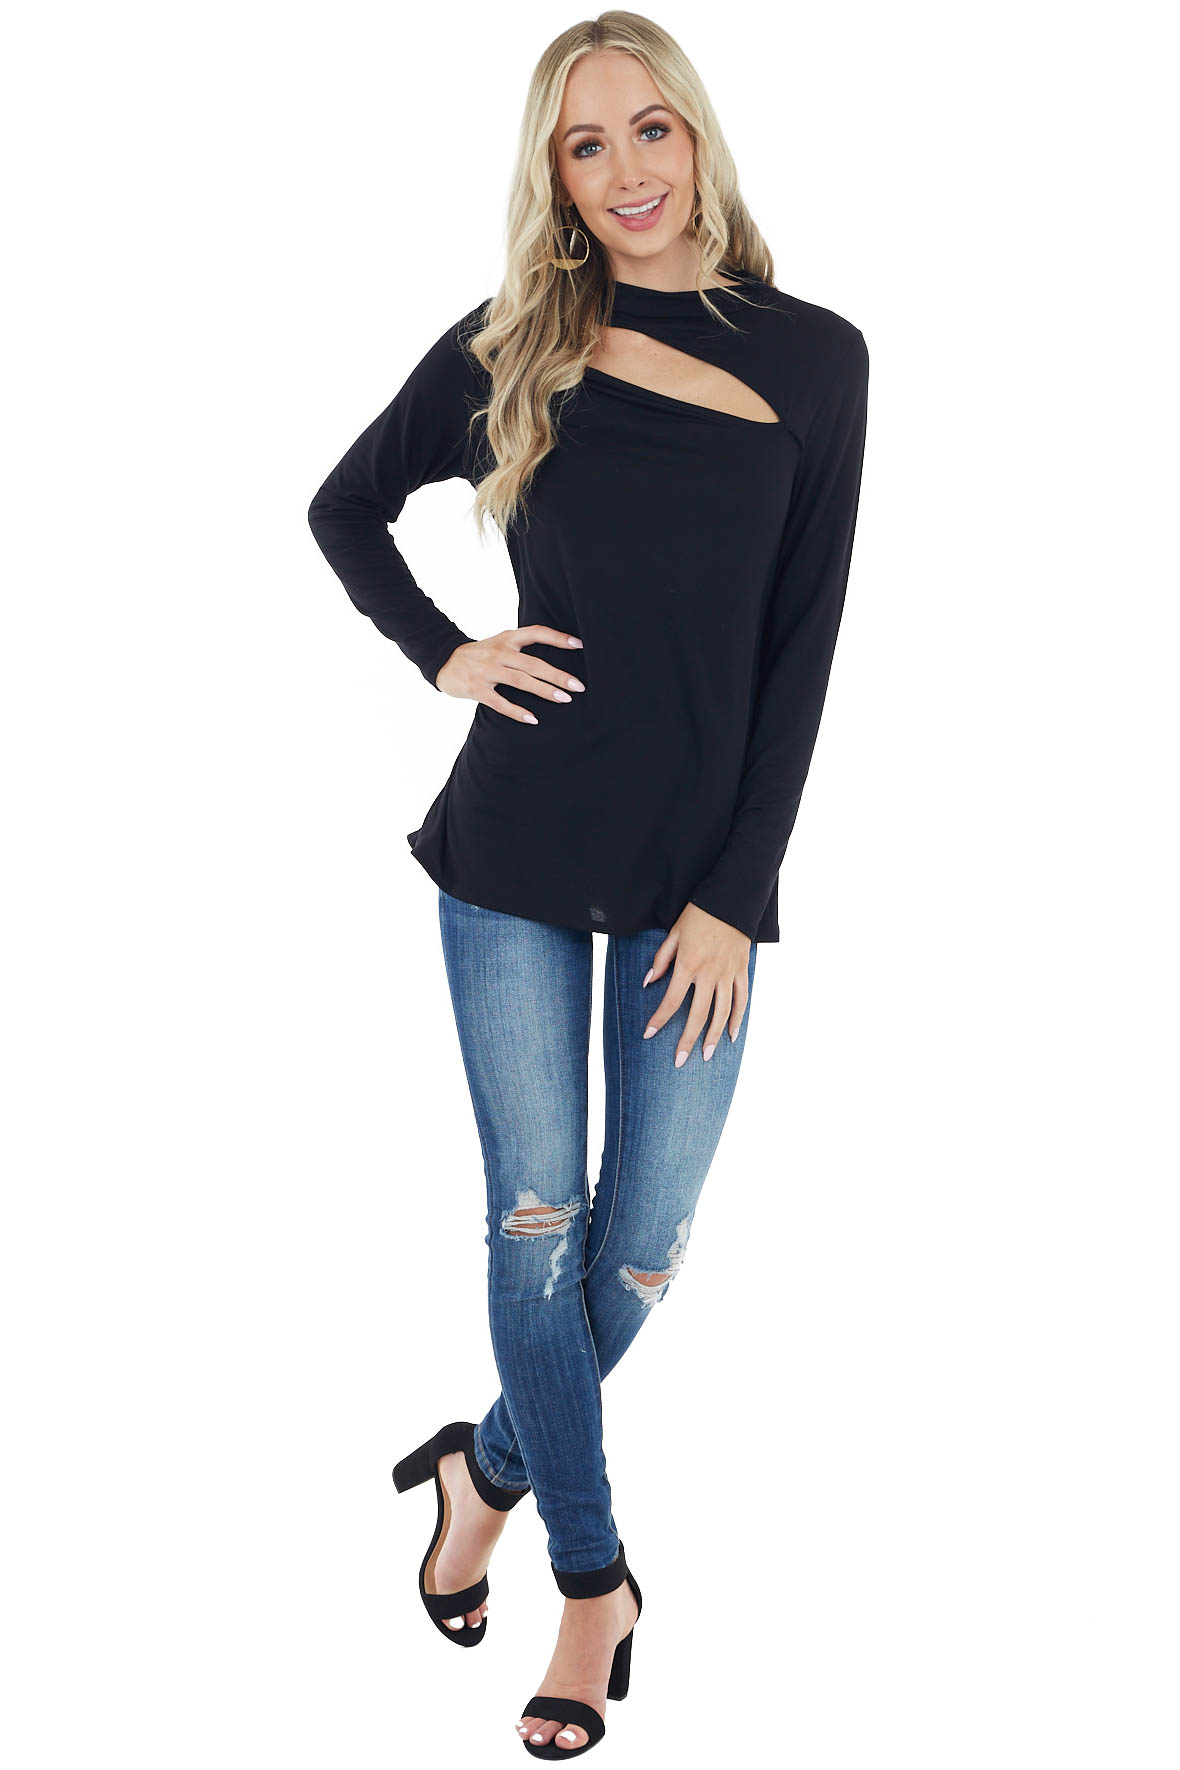 Black Chest Cut Out Stretchy Knit Top with Long Sleeves